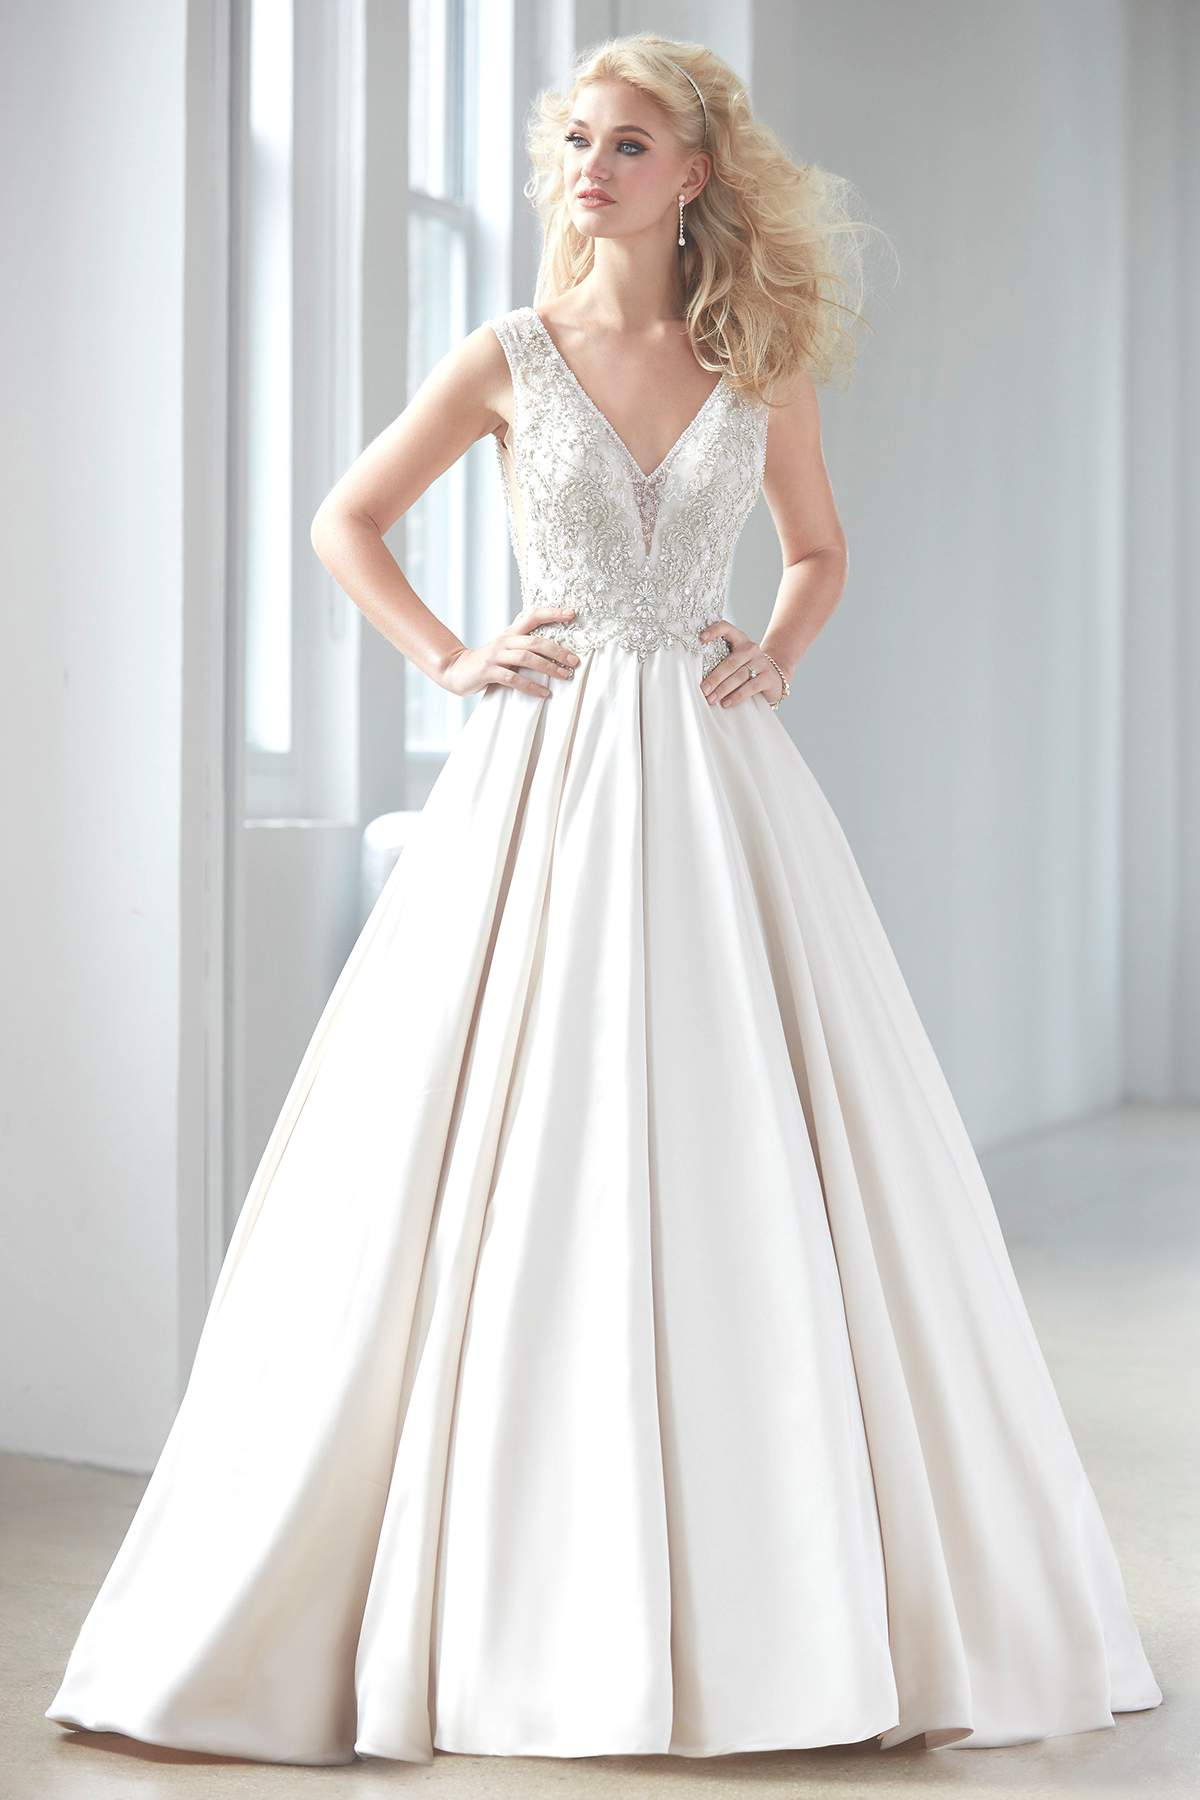 Style MJ350 by Madison James - Find Your Dream Dress